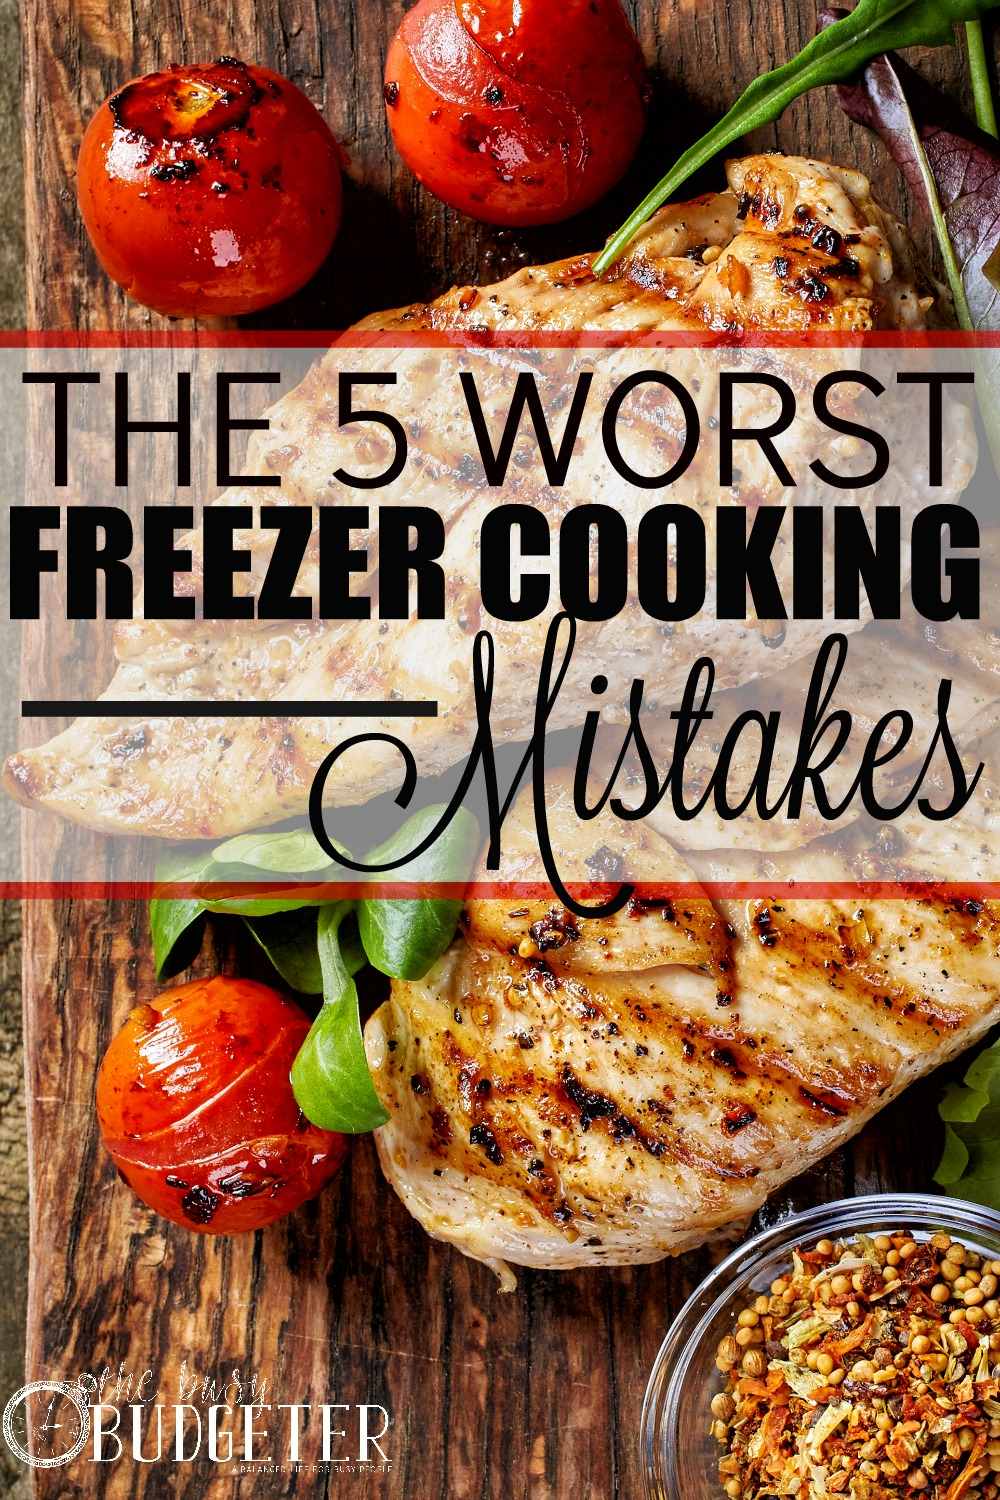 The Five Worst Freezer Cooking Mistakes. Hahahaa Oh my gosh! I've seriously done all of these and I totally agree! I actually gave up freezer cooking after my first session because of it. I started again in January and didn't do ANY of these and it's amazing how easy it is now!